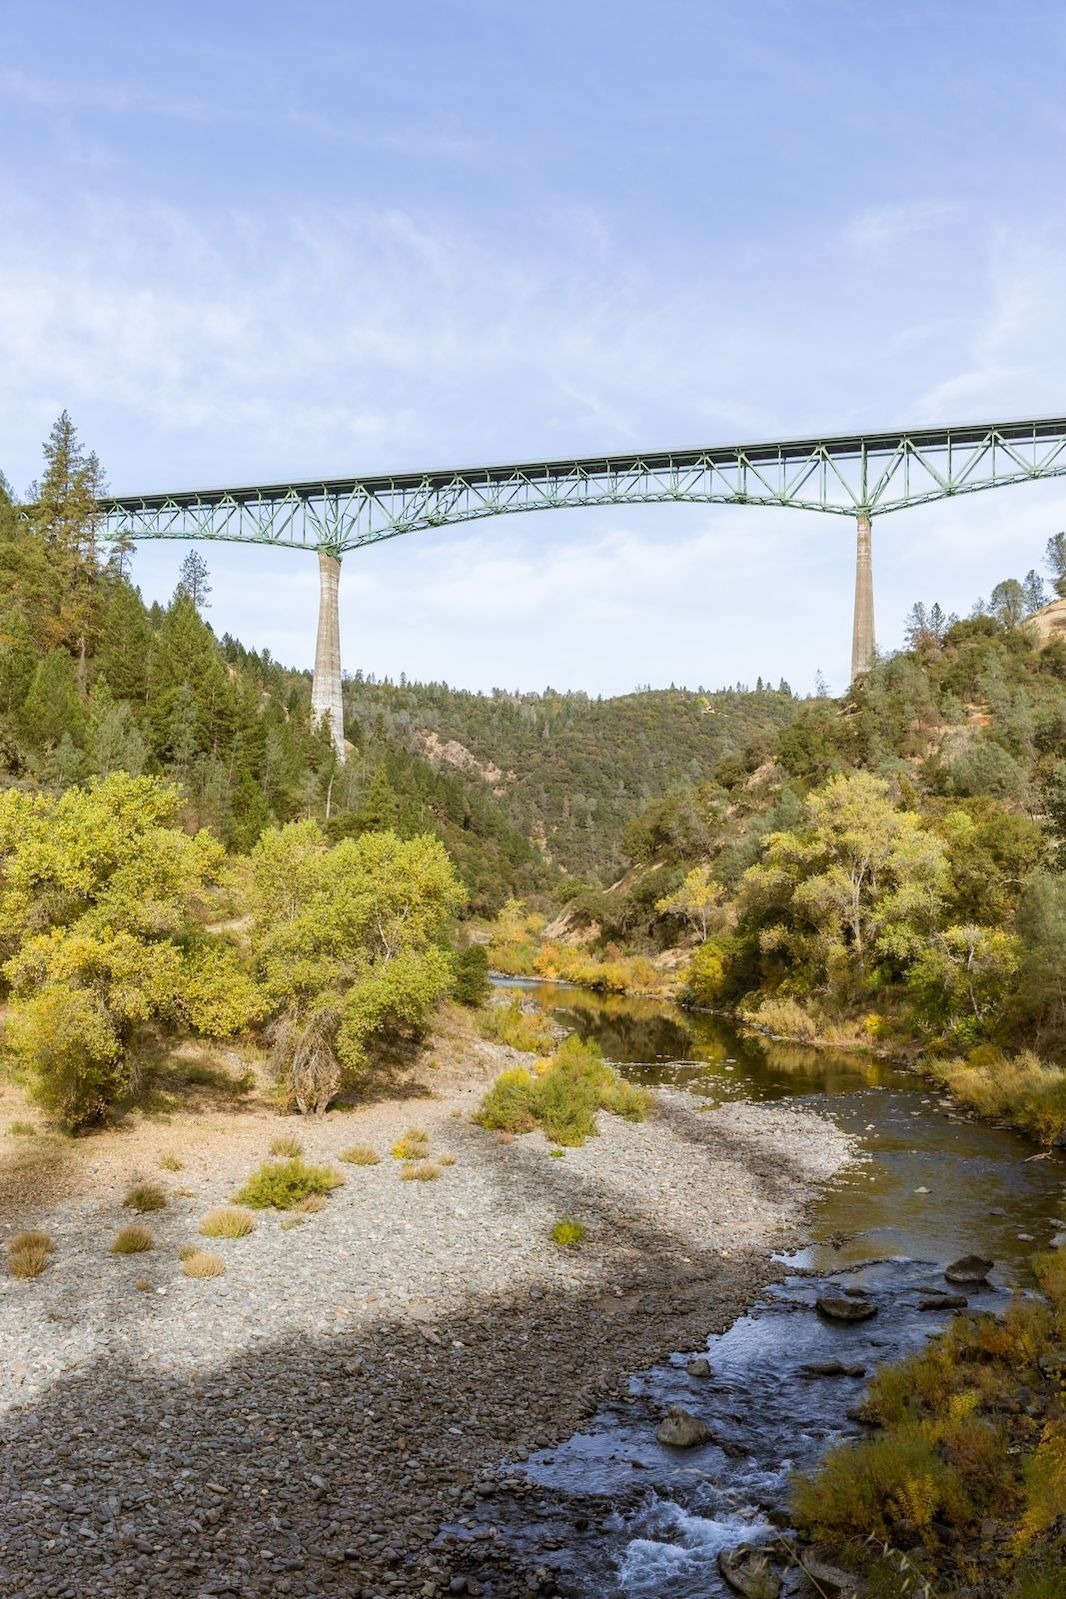 Bridge over a trail and river in California's Gold Country